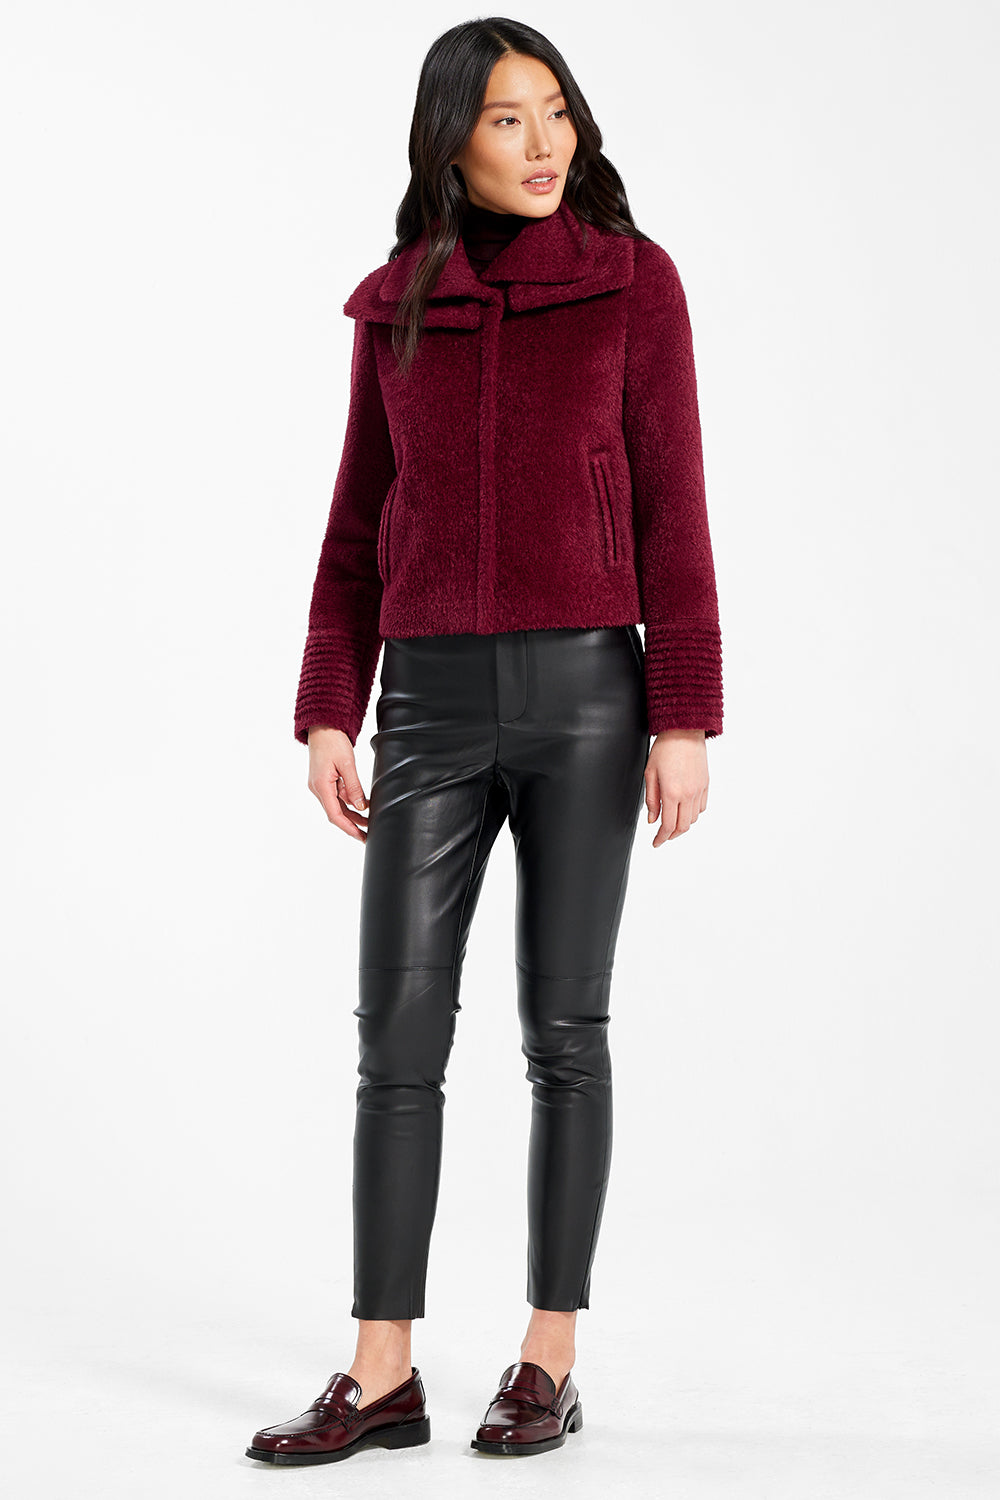 Sentaler Bouclé Alpaca Moto Jacket with Signature Double Collar featured in Bouclé Alpaca and available in Garnet Red. Seen from front.